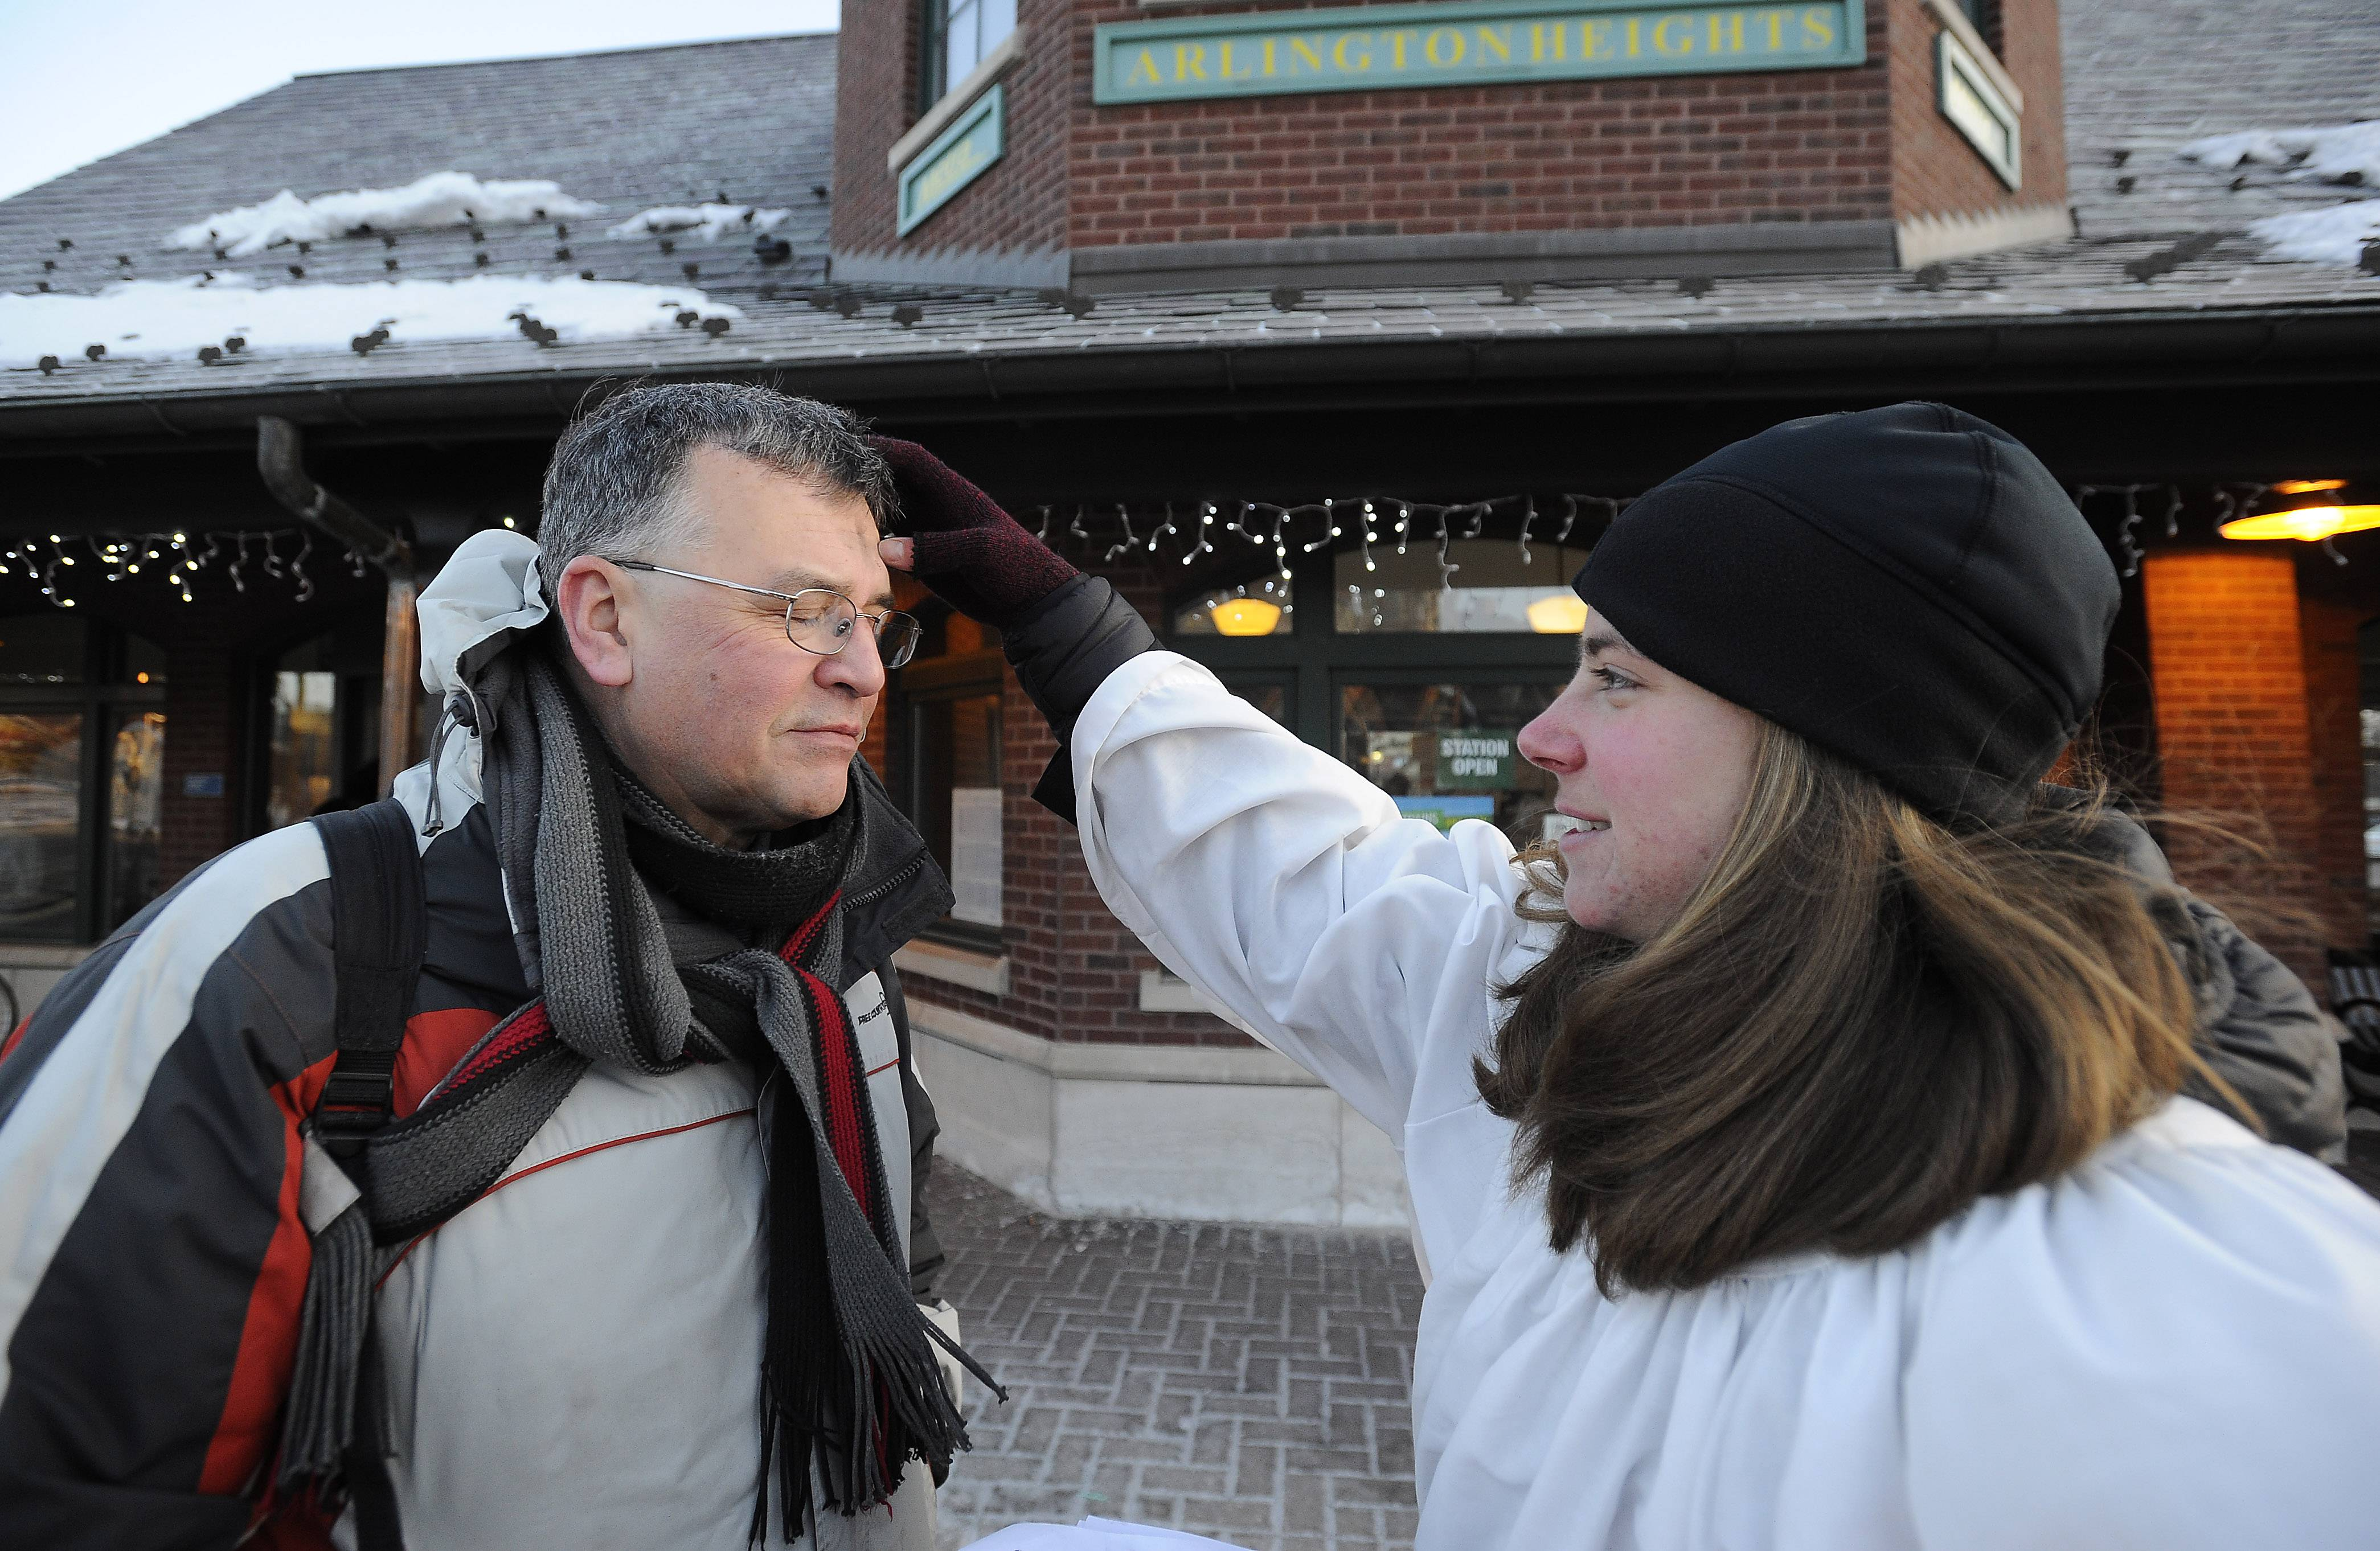 Beth Carter, 28, a member of St. Simon's Episcopal Church in Arlington Heights, gives ashes to Bob Rebl of Elk Grove Village at the Arlington Heights Metra station on Ash Wednesday.